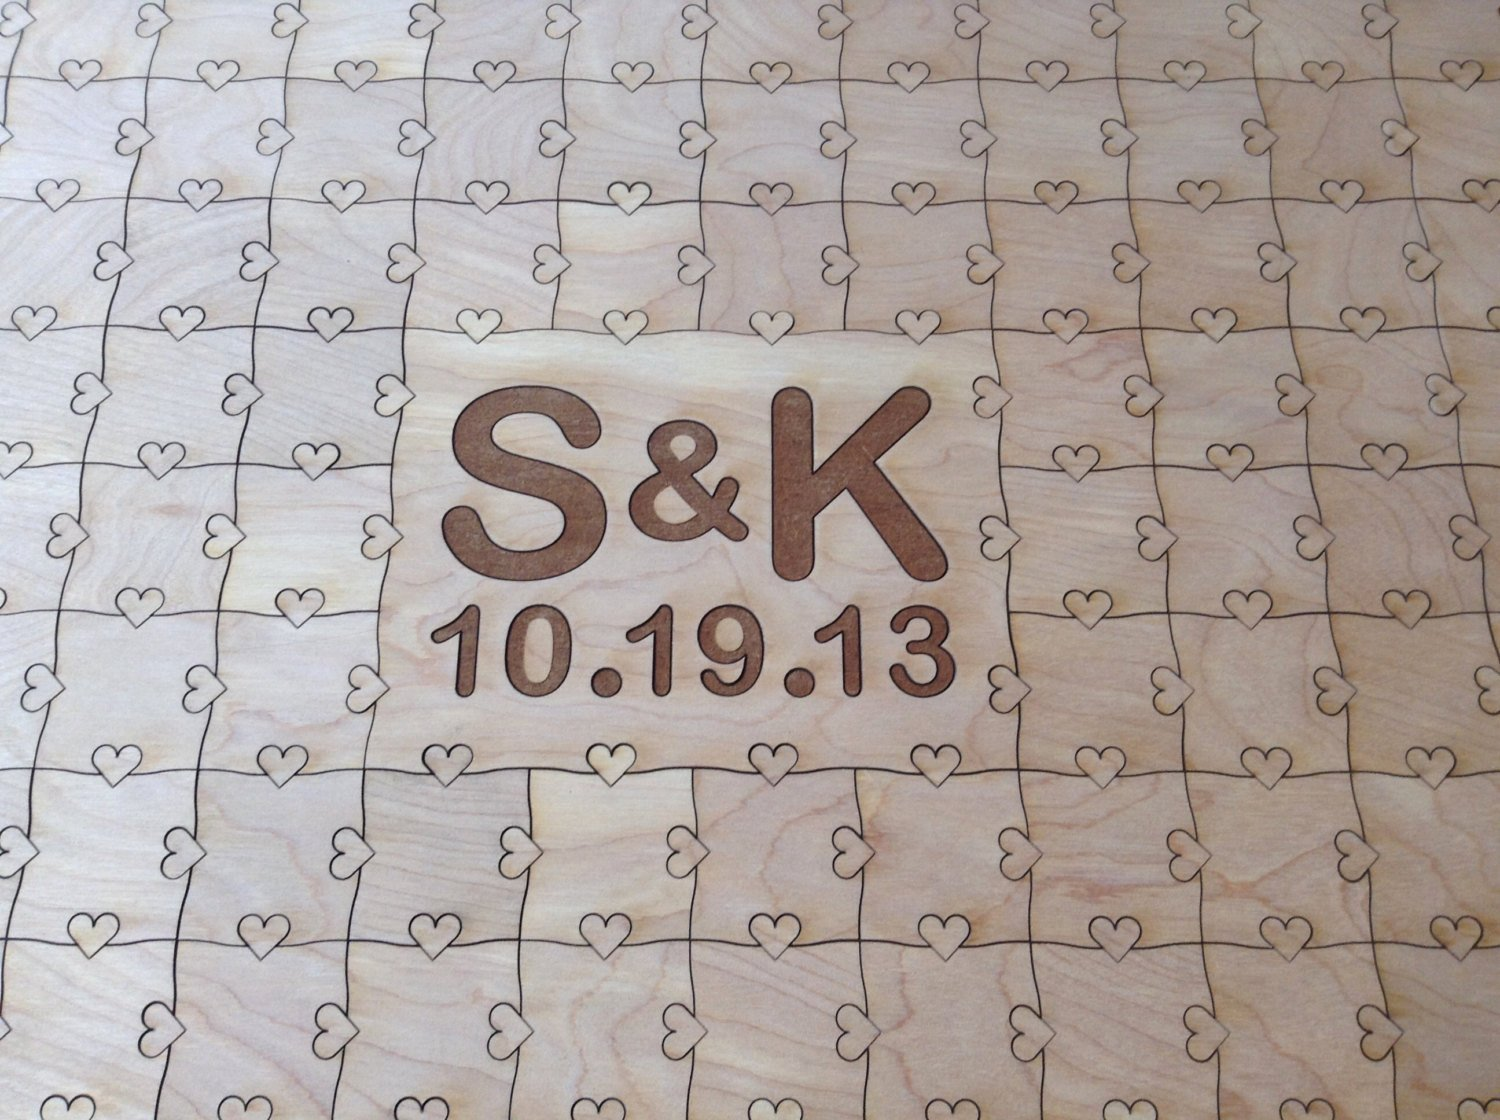 Puzzle Piece Cut Outs Fresh Wedding 100 Piece Puzzle with Cut Out Text by